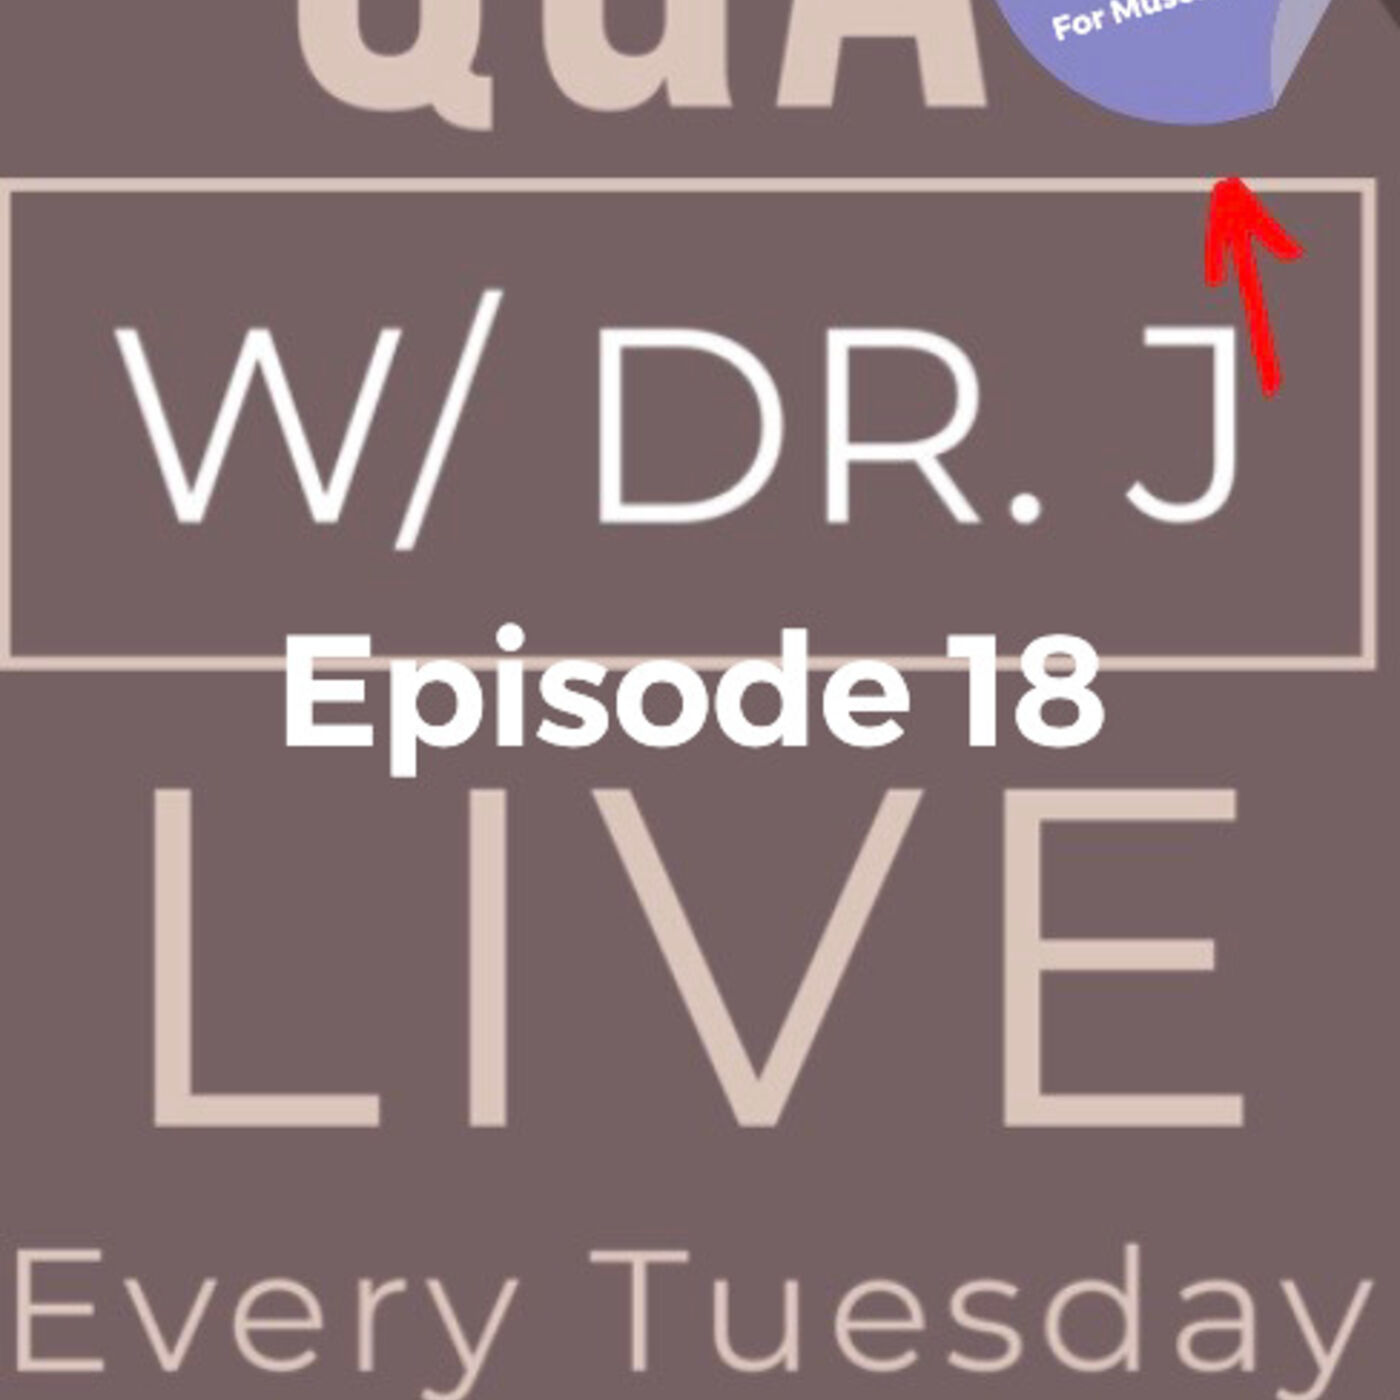 EP 18 Q&A with Dr J | Emsculpt & Vanquish for Muscle Building and Fat Loss